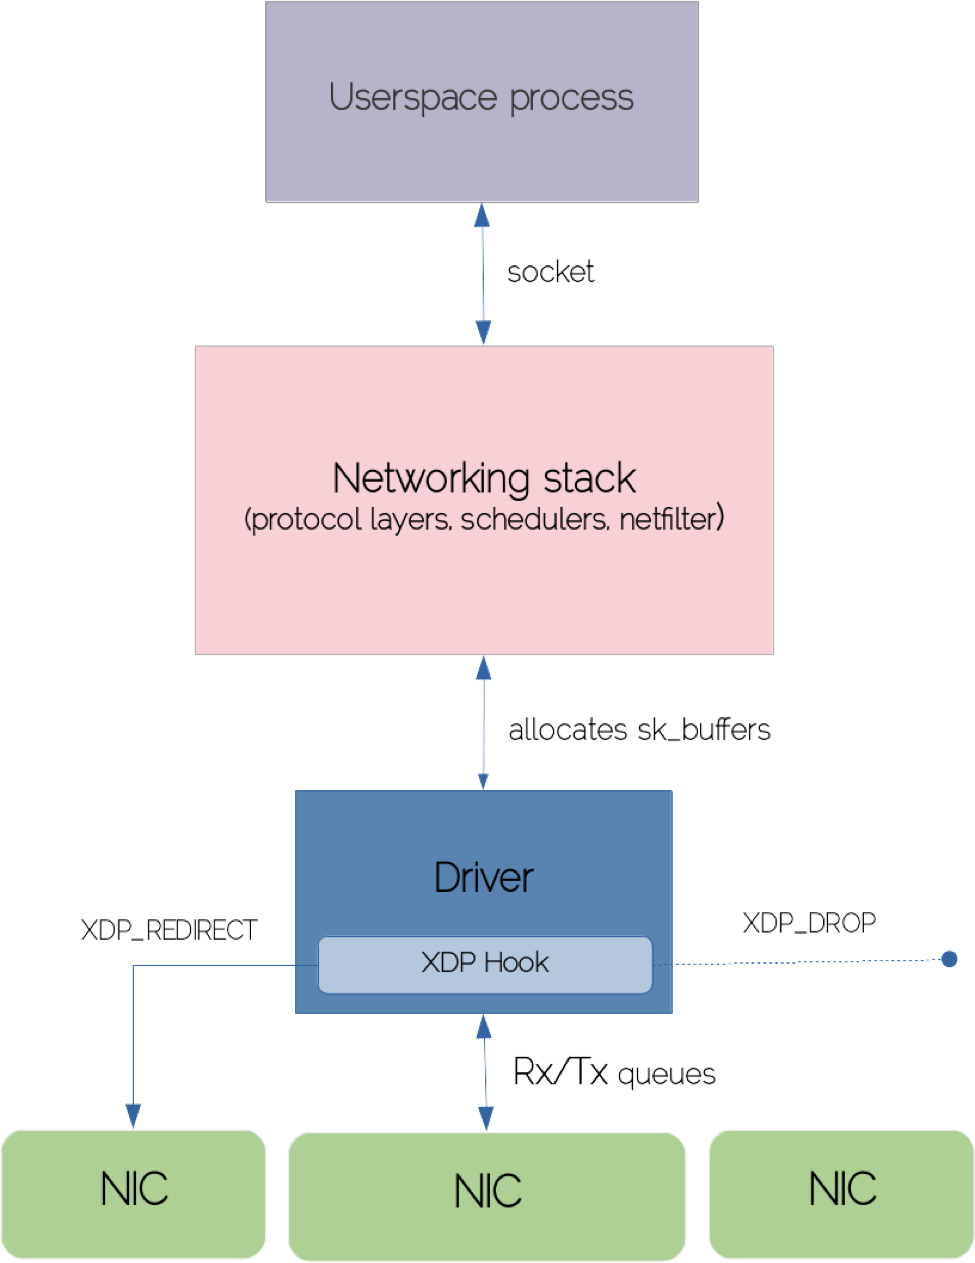 eBPF and XDP for Processing Packets at Bare-metal Speed